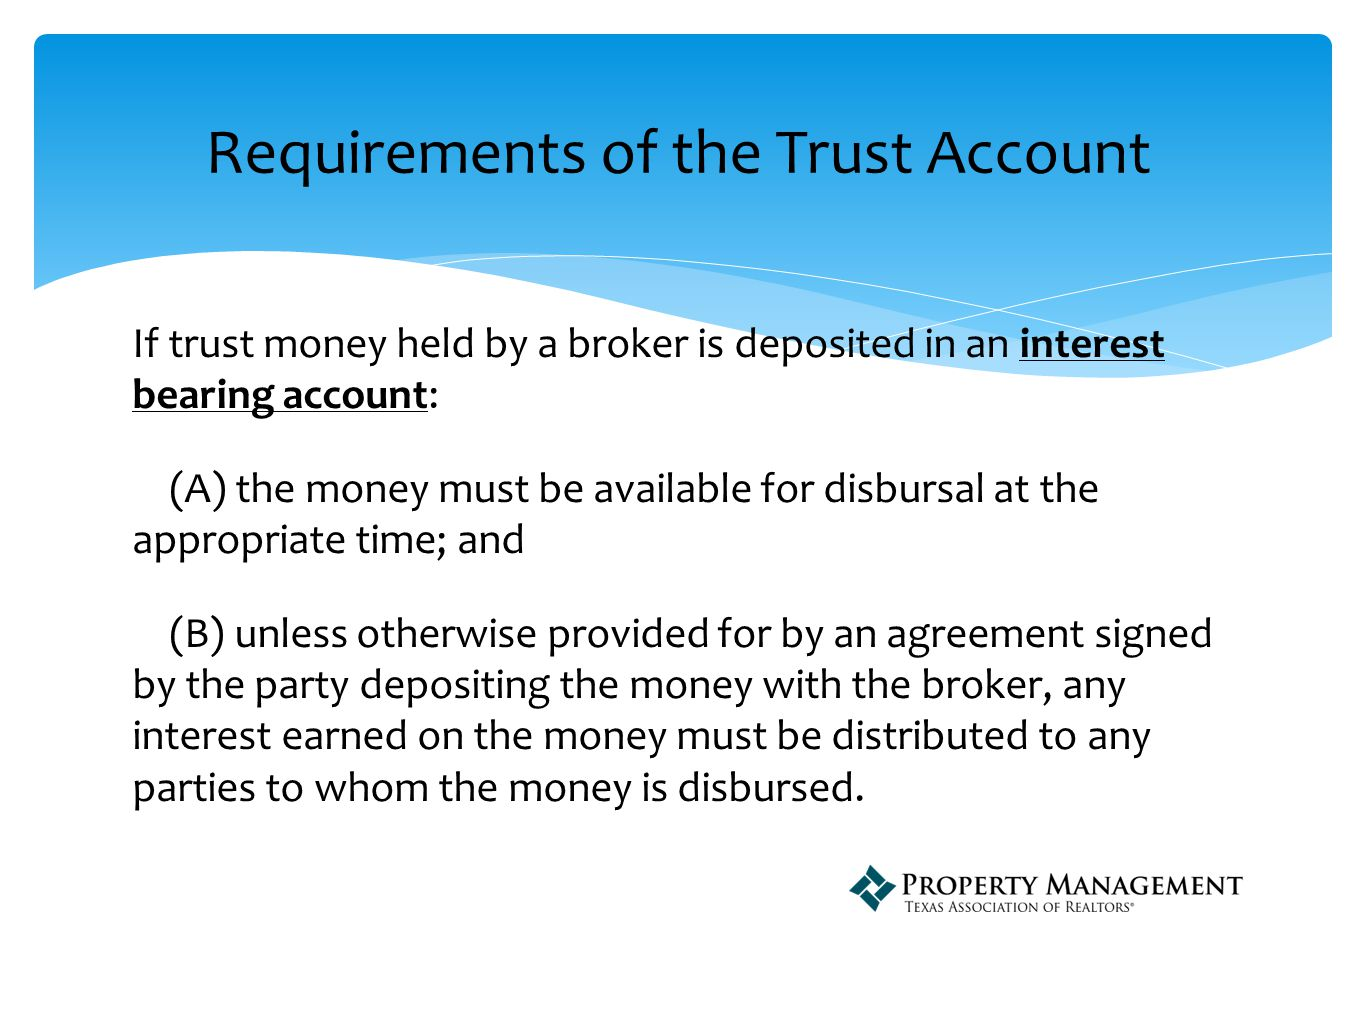 A broker39s trust account must be